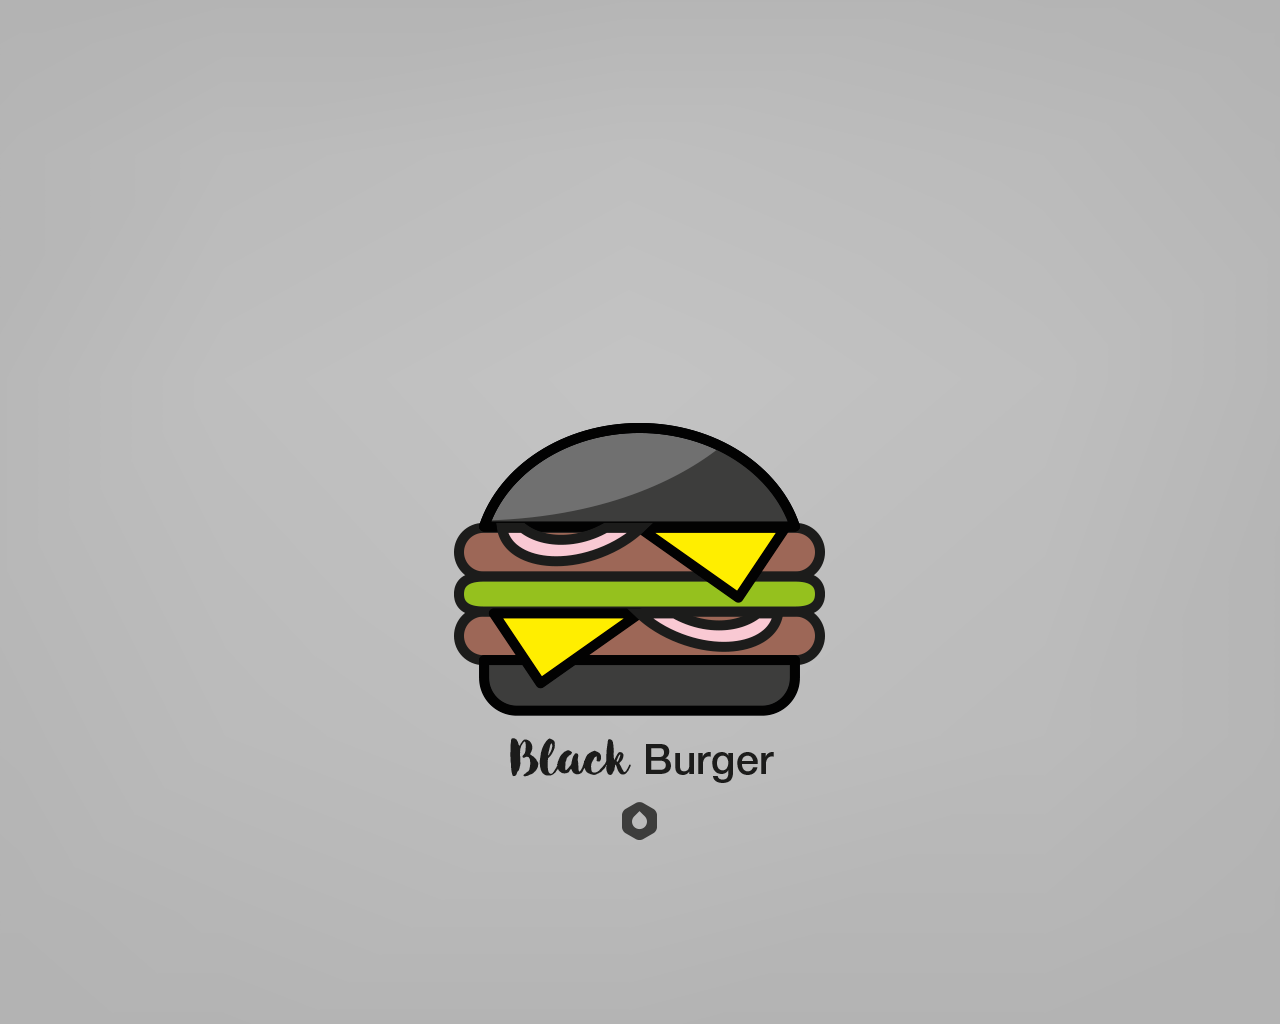 Wallpaper Pick Your Burger - Desktop - Black